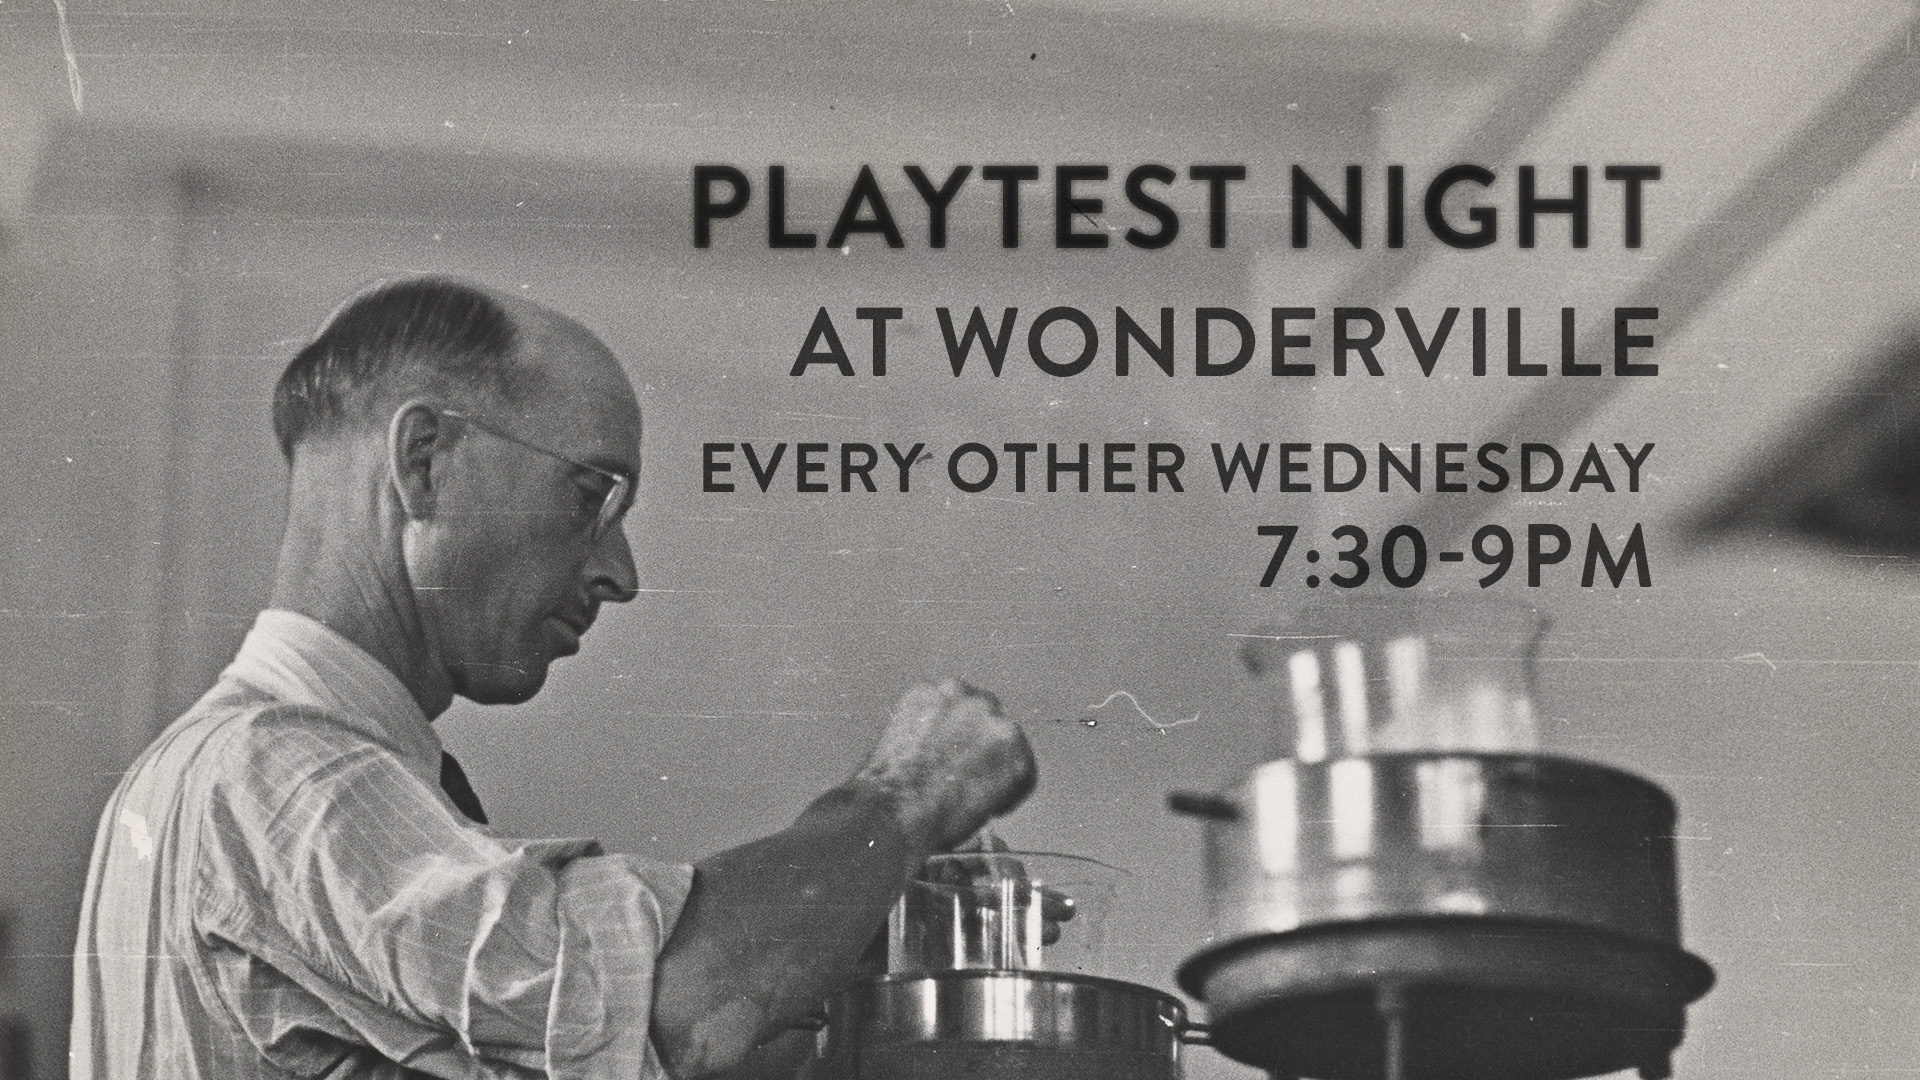 Playtest night is every other Wednesday at 7:30 at Wonderville